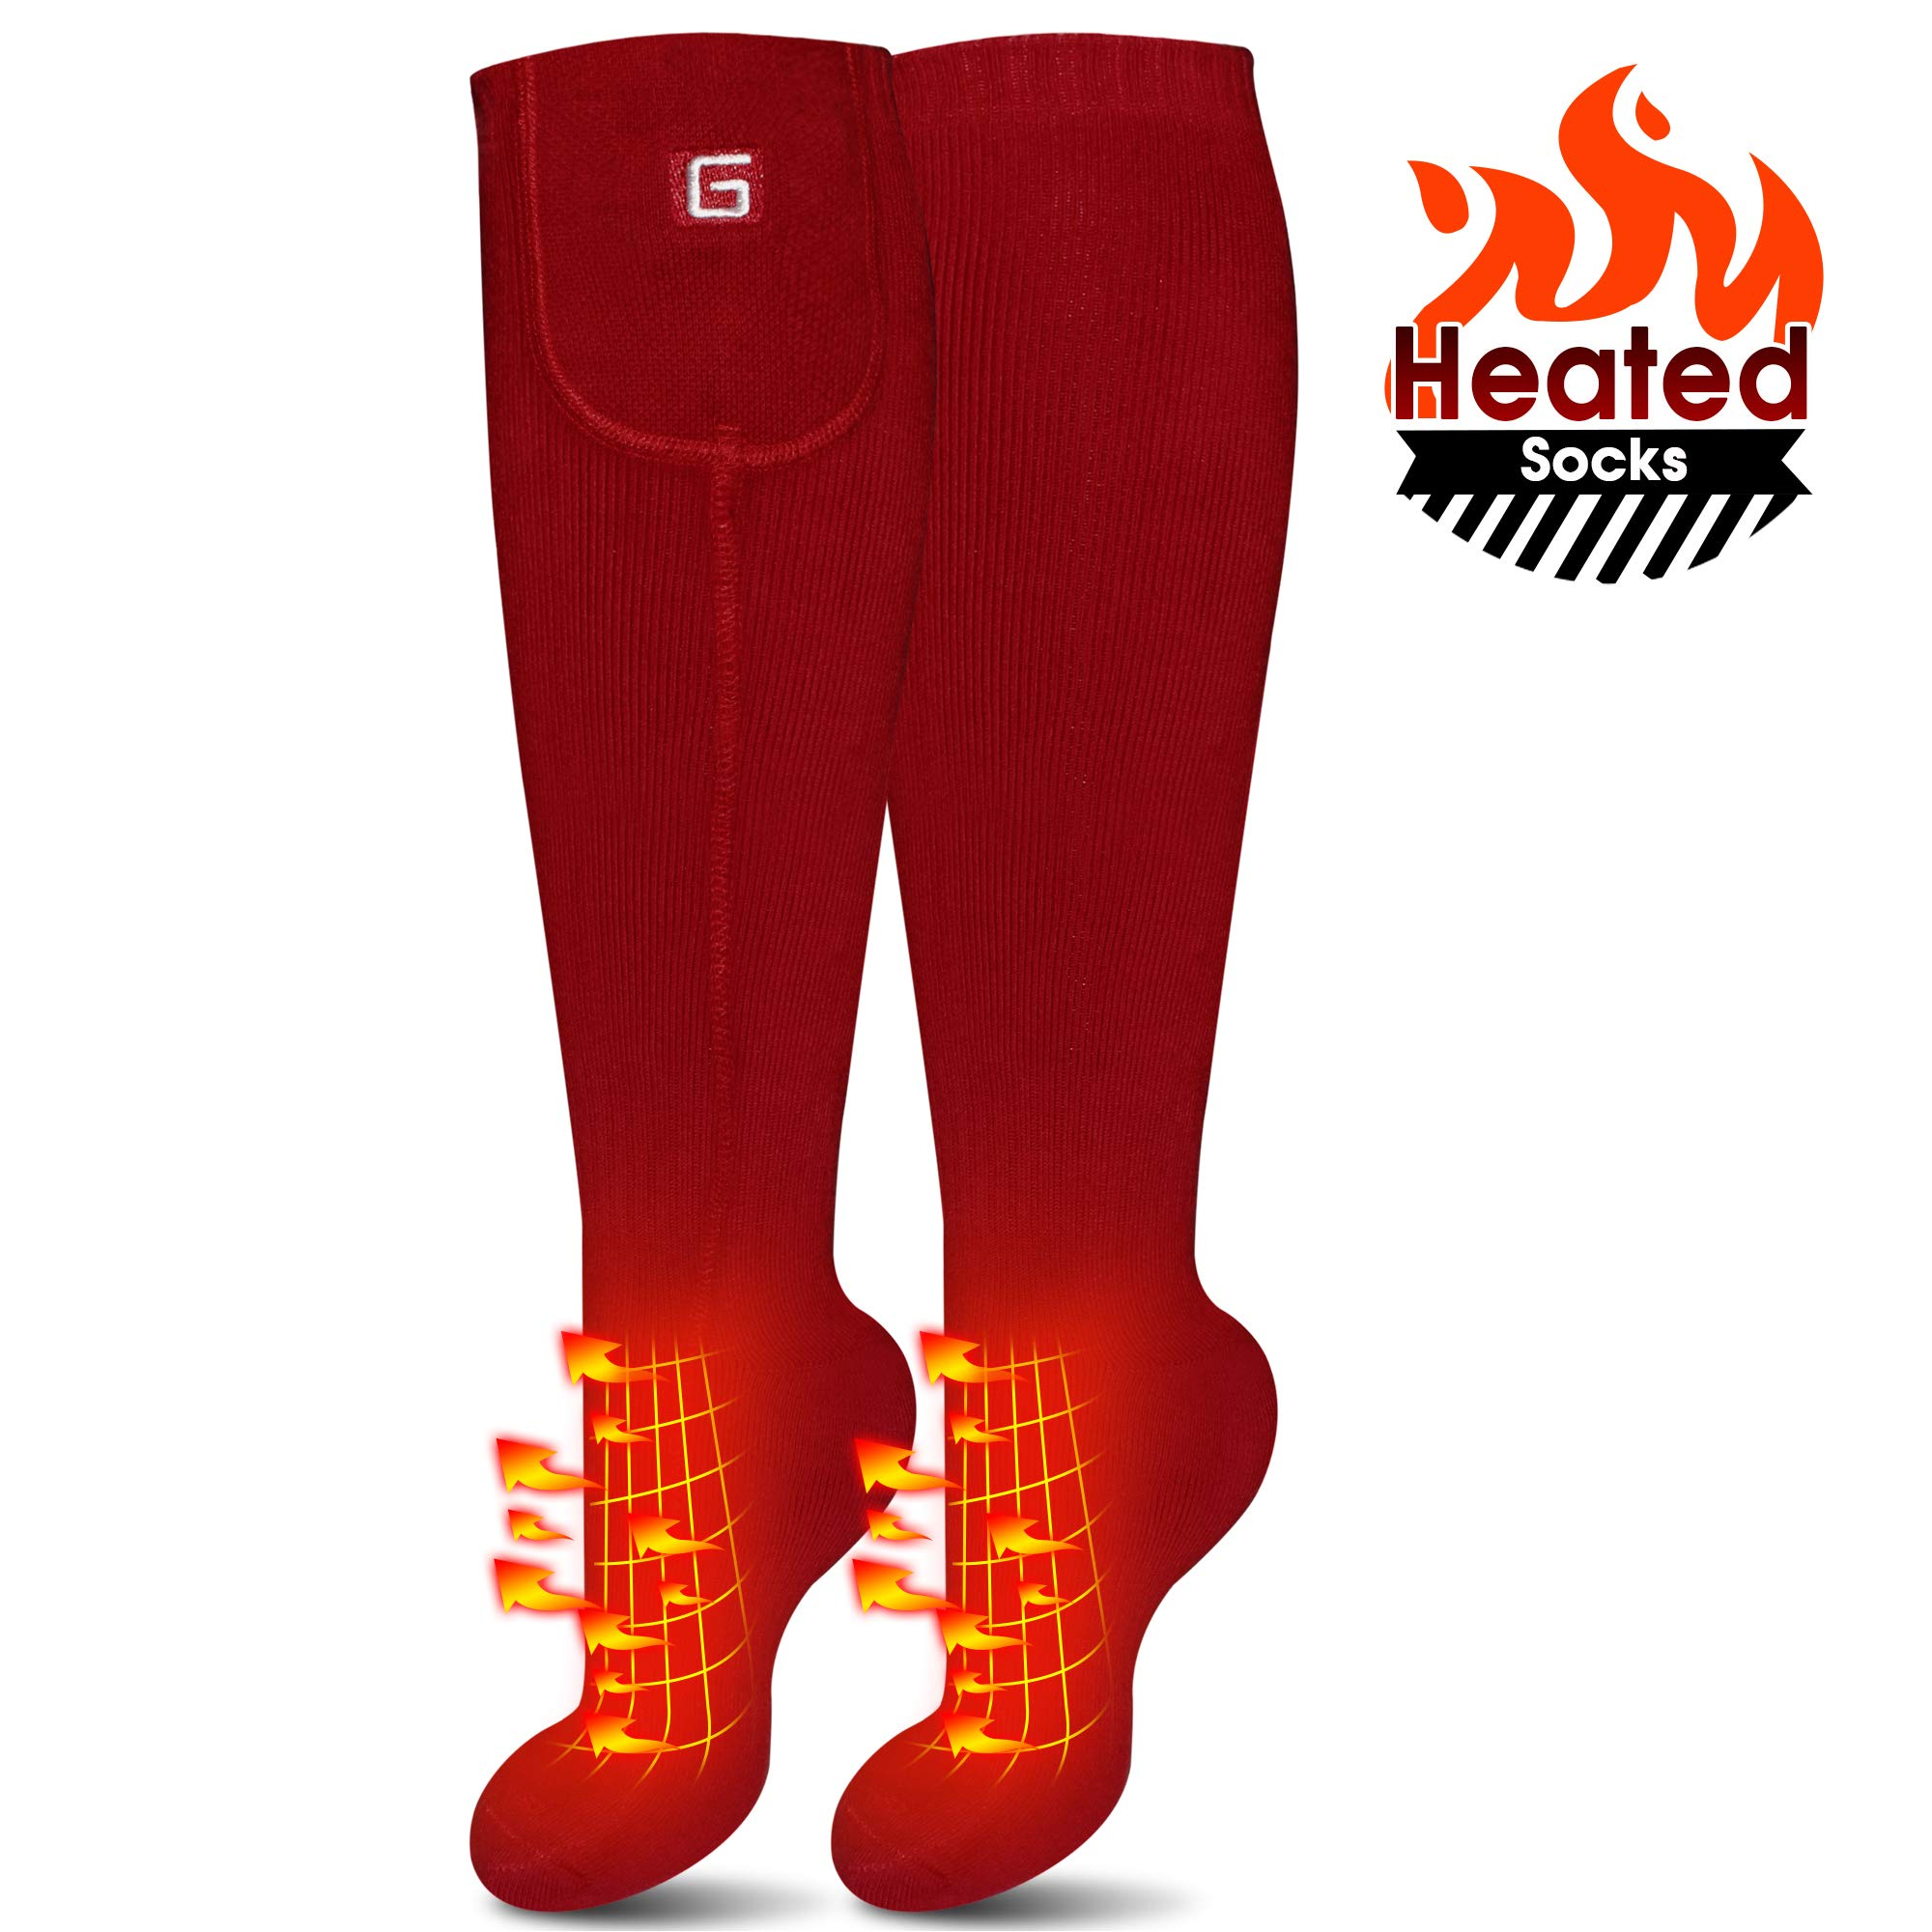 IFWATER Electric Heated Socks for Women Men, Rechargeable Electric Socks Battery Heated Socks Foot Warmer for Chronically Cold Foot, Skiing Hiking Warm Socks (Red, M) by IFWATER